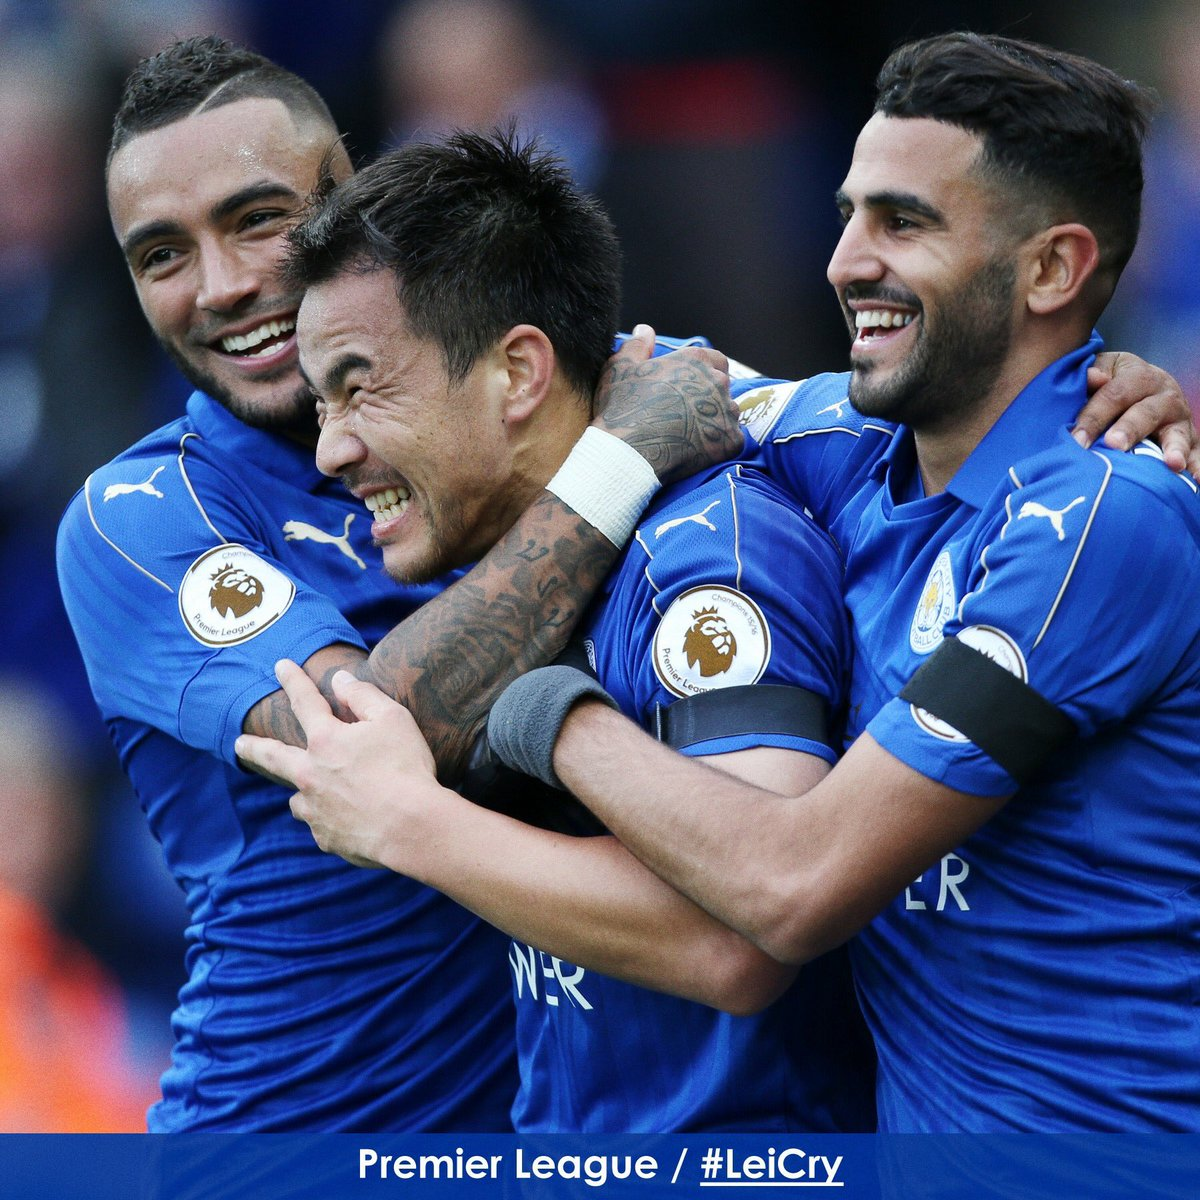 Good performance from the team today @okazakiofficial face says it all hahaha Congratulations Musa and @FuchsOfficial